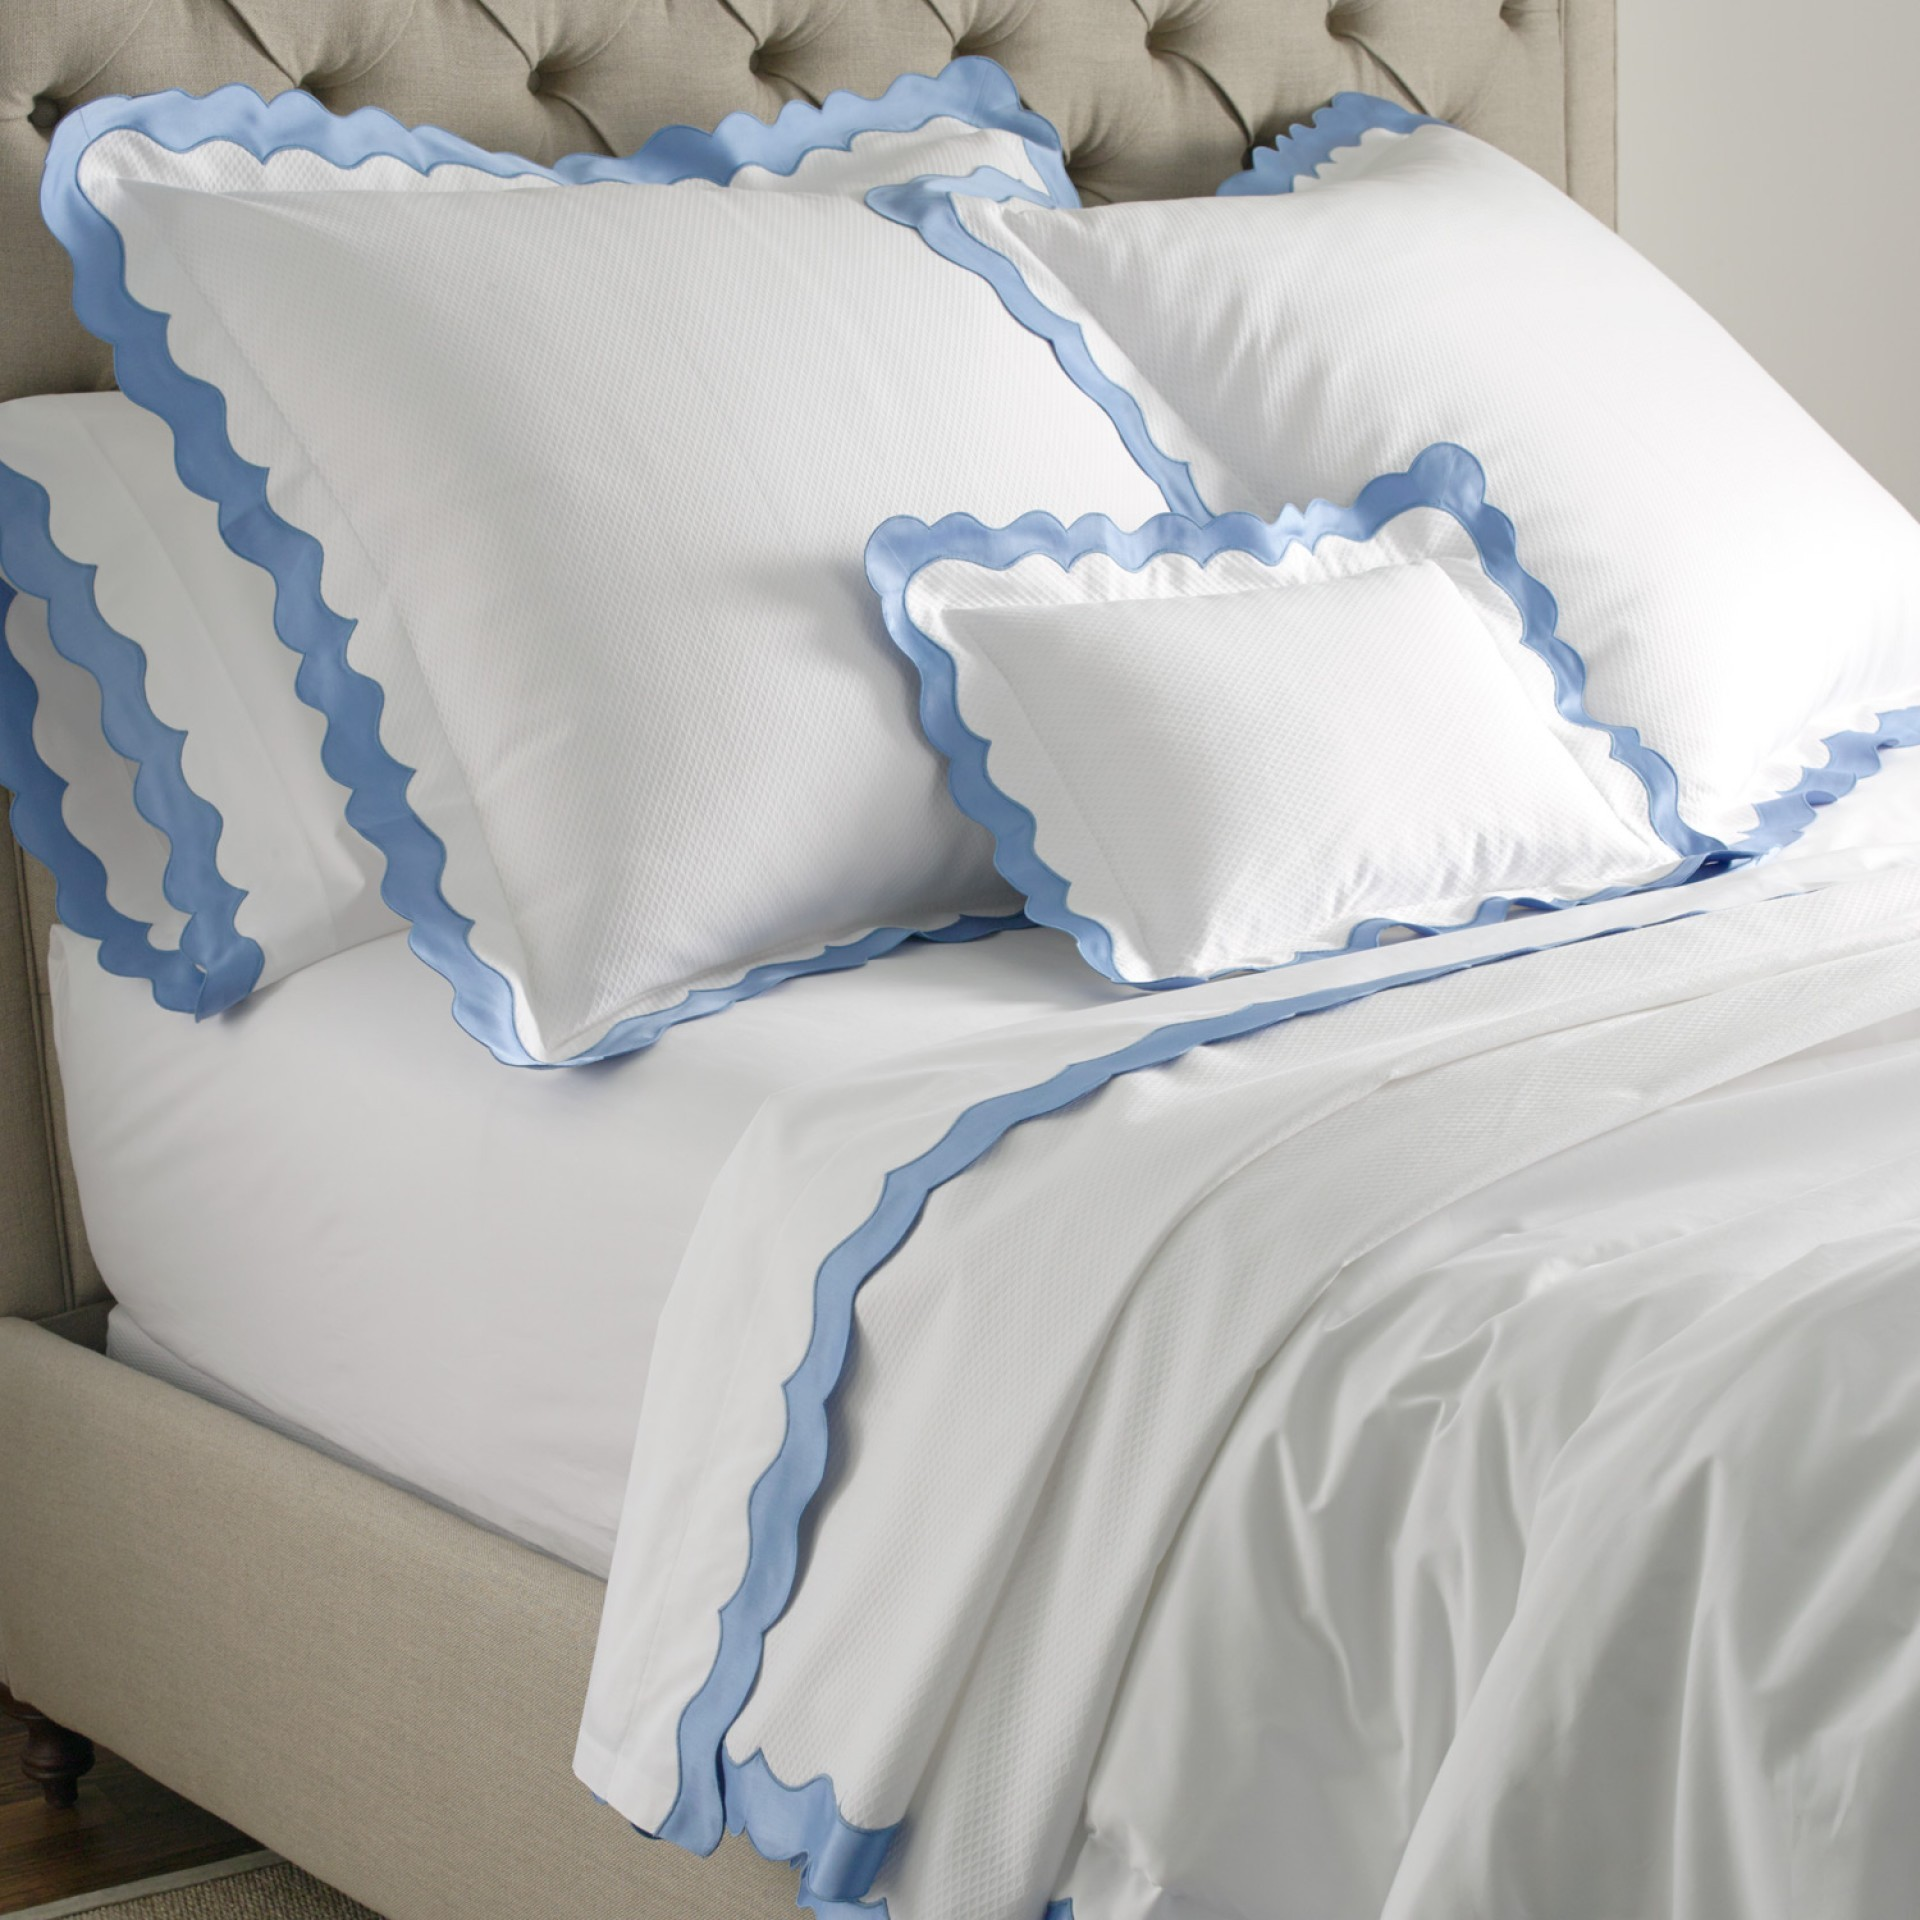 Extraordinary matouk sheets with pillows for bedroom with matouk sheets sale